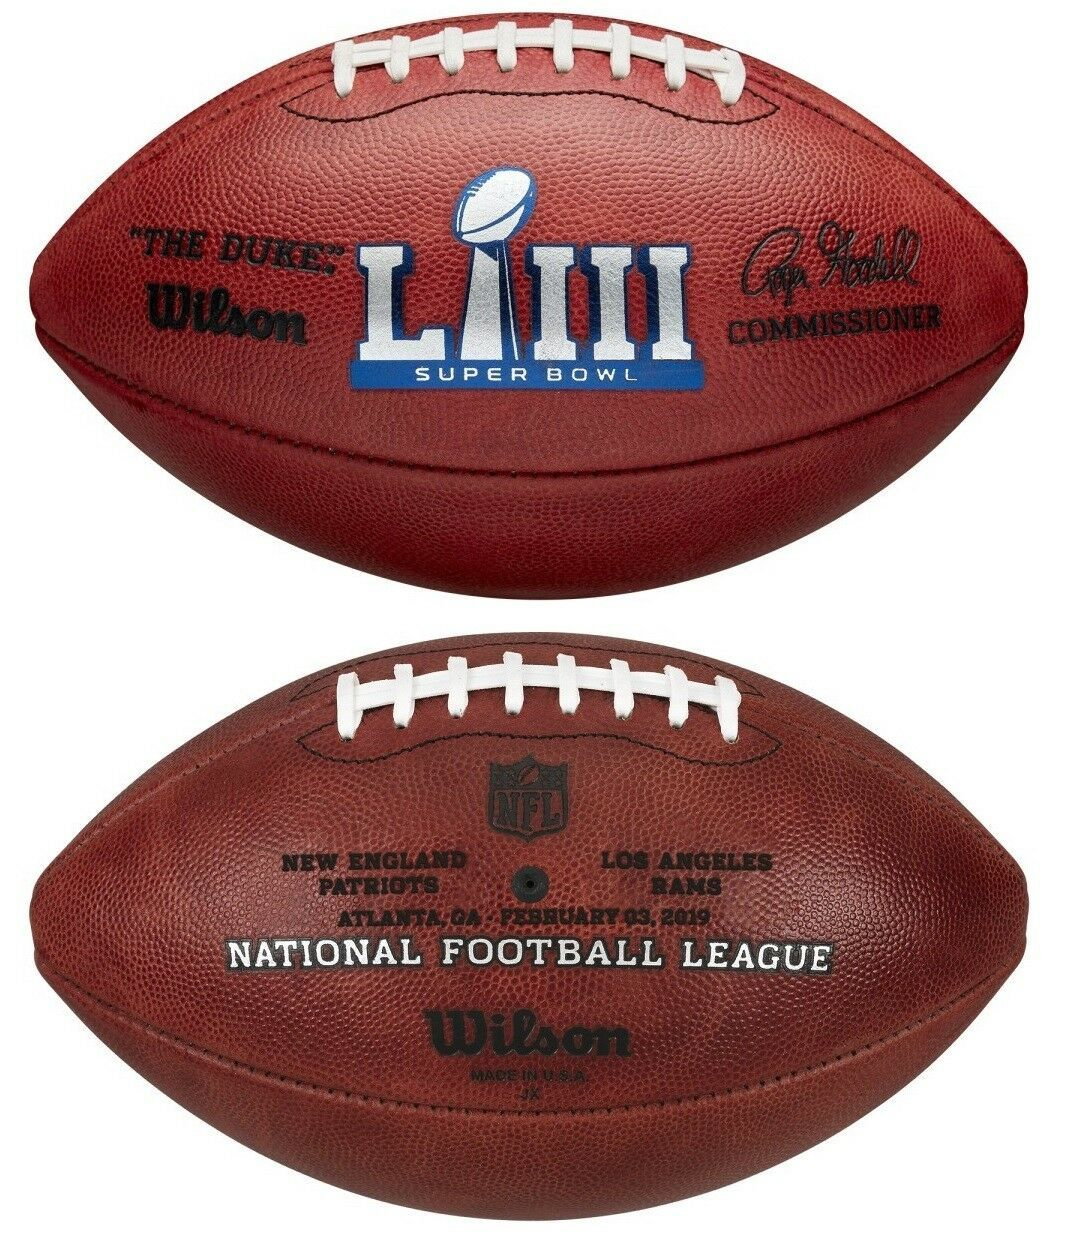 Wilson Official Leather Nfl Super Bowl 53 Liii Full Size Game